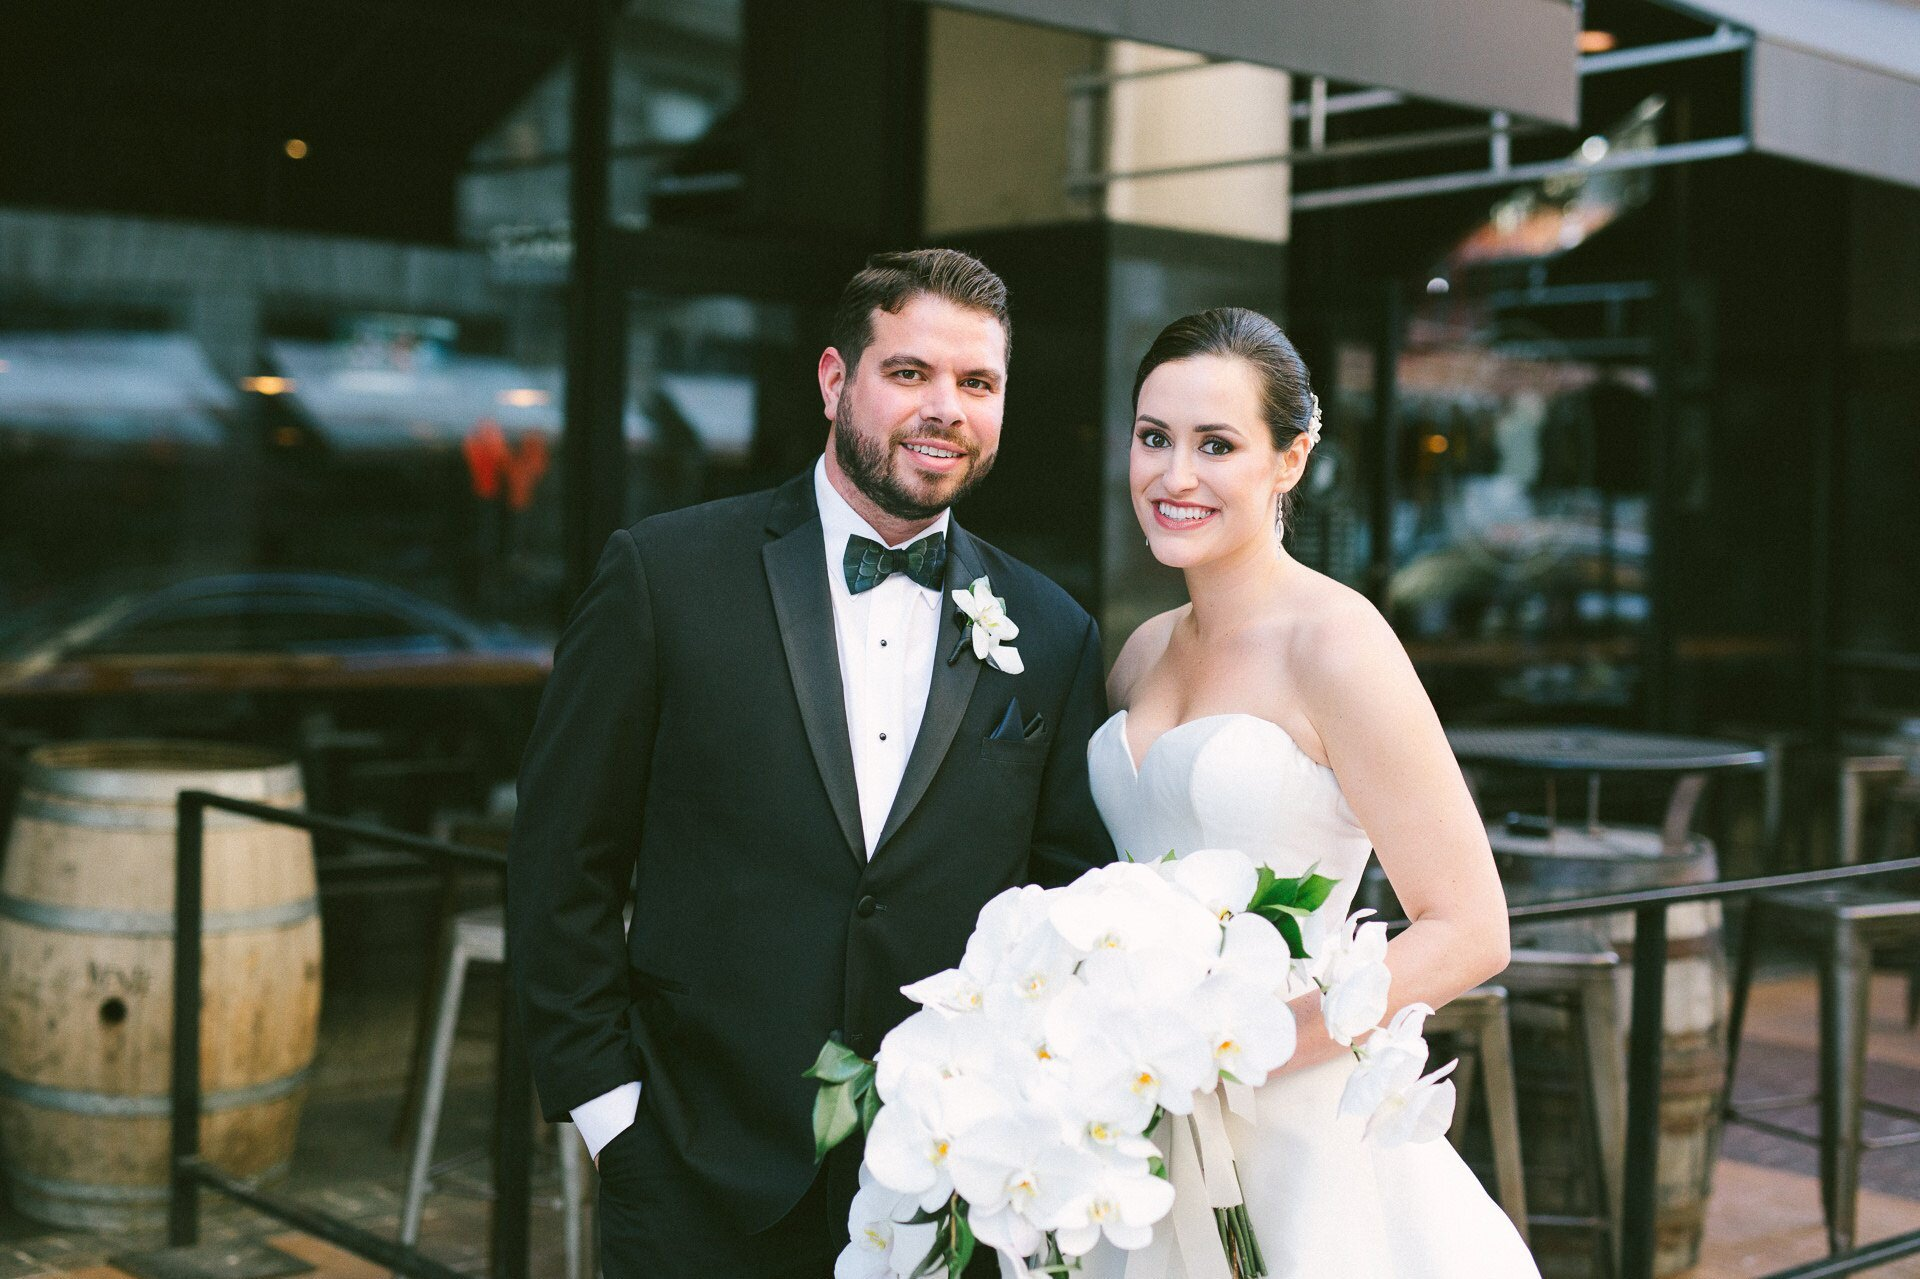 Playhouse State Theater Wedding Photographer in Cleveland 2 11.jpg